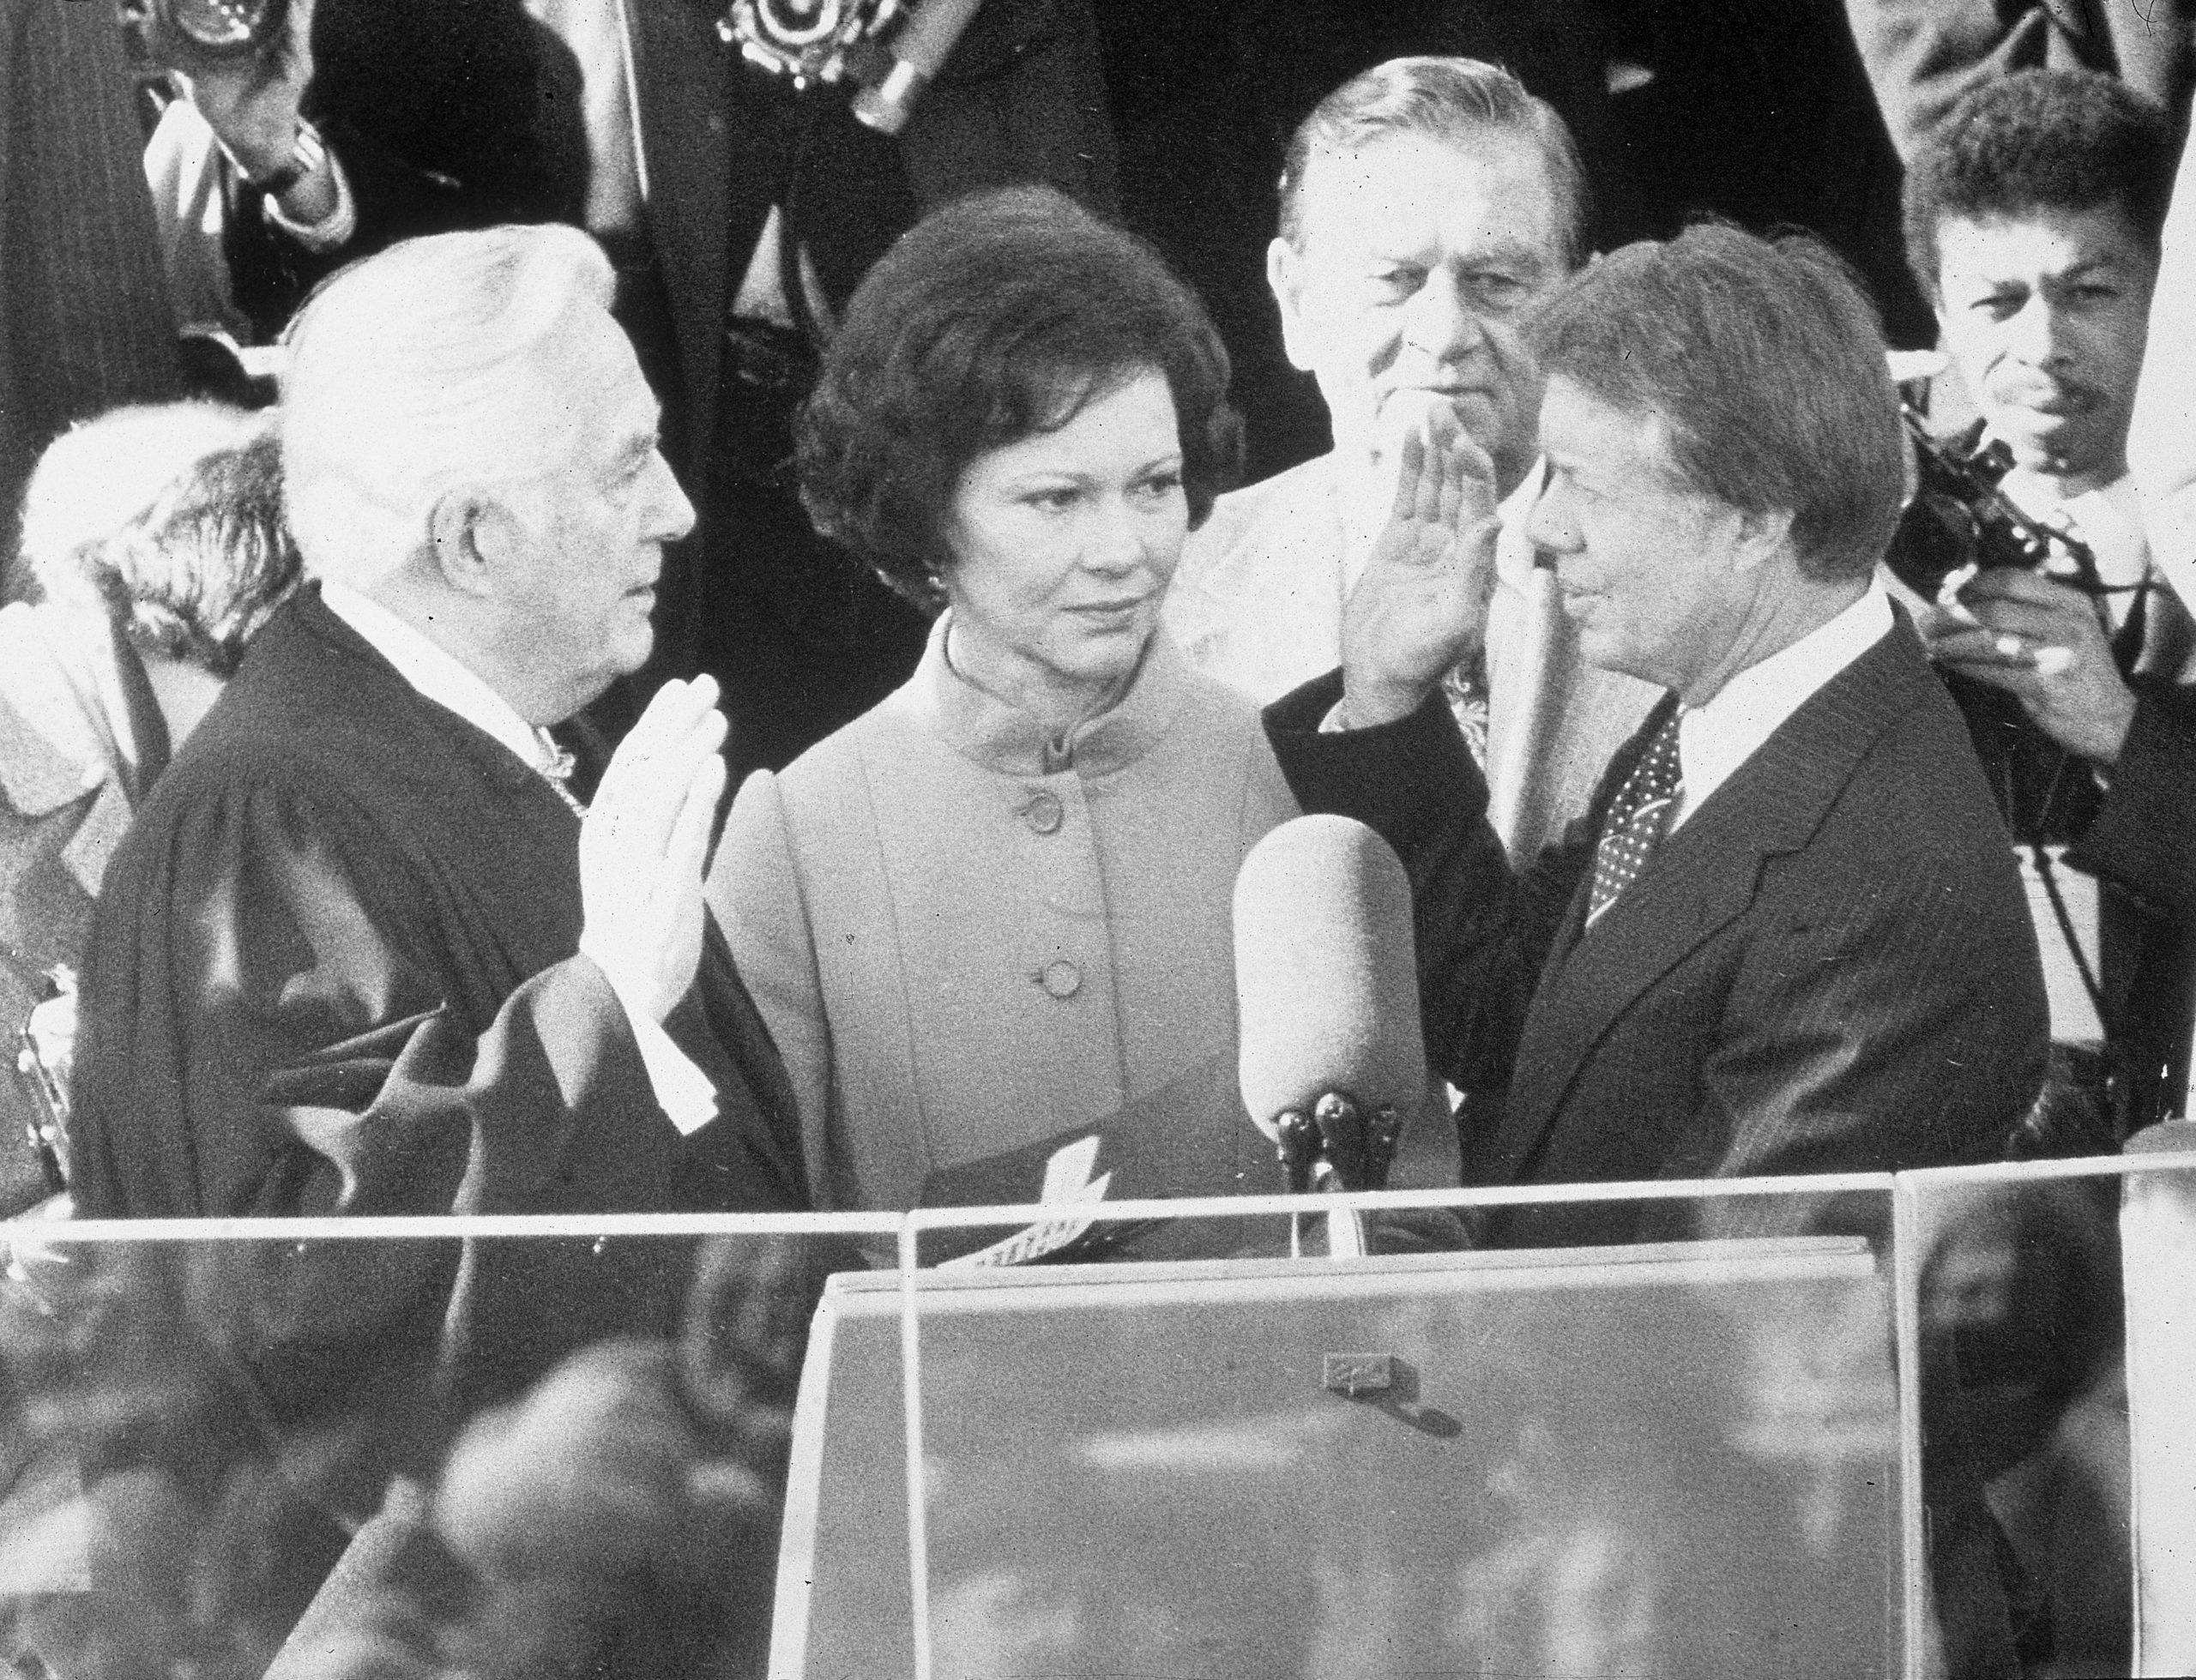 Jimmy Carter Presidential Inauguration, DC, 1977.